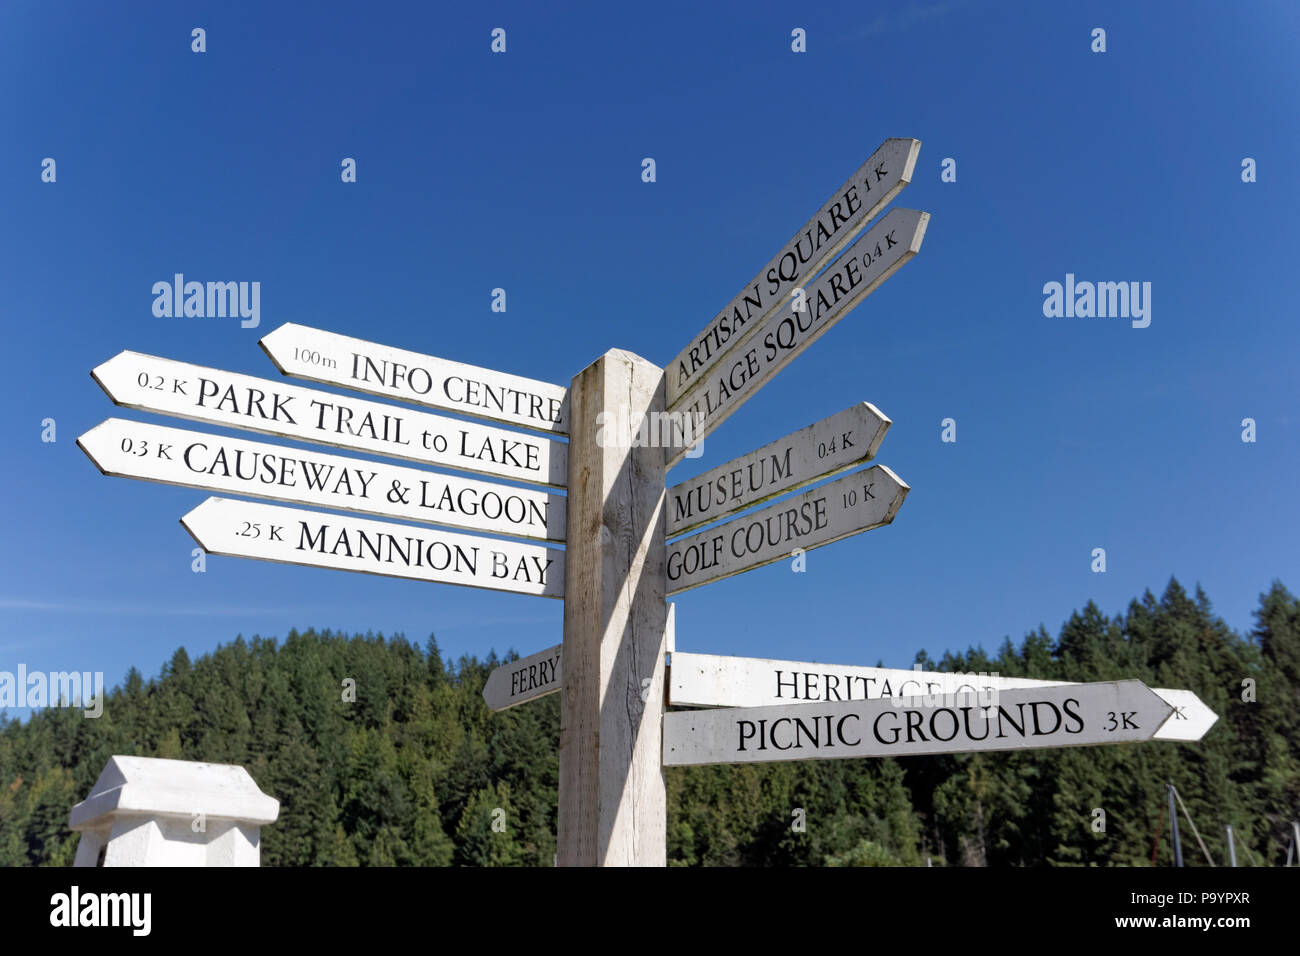 Wooden signpost showing direction and distance in kilometers to tourist attractions on Bowen Island near Vancouver, British Columbia, Canada - Stock Image